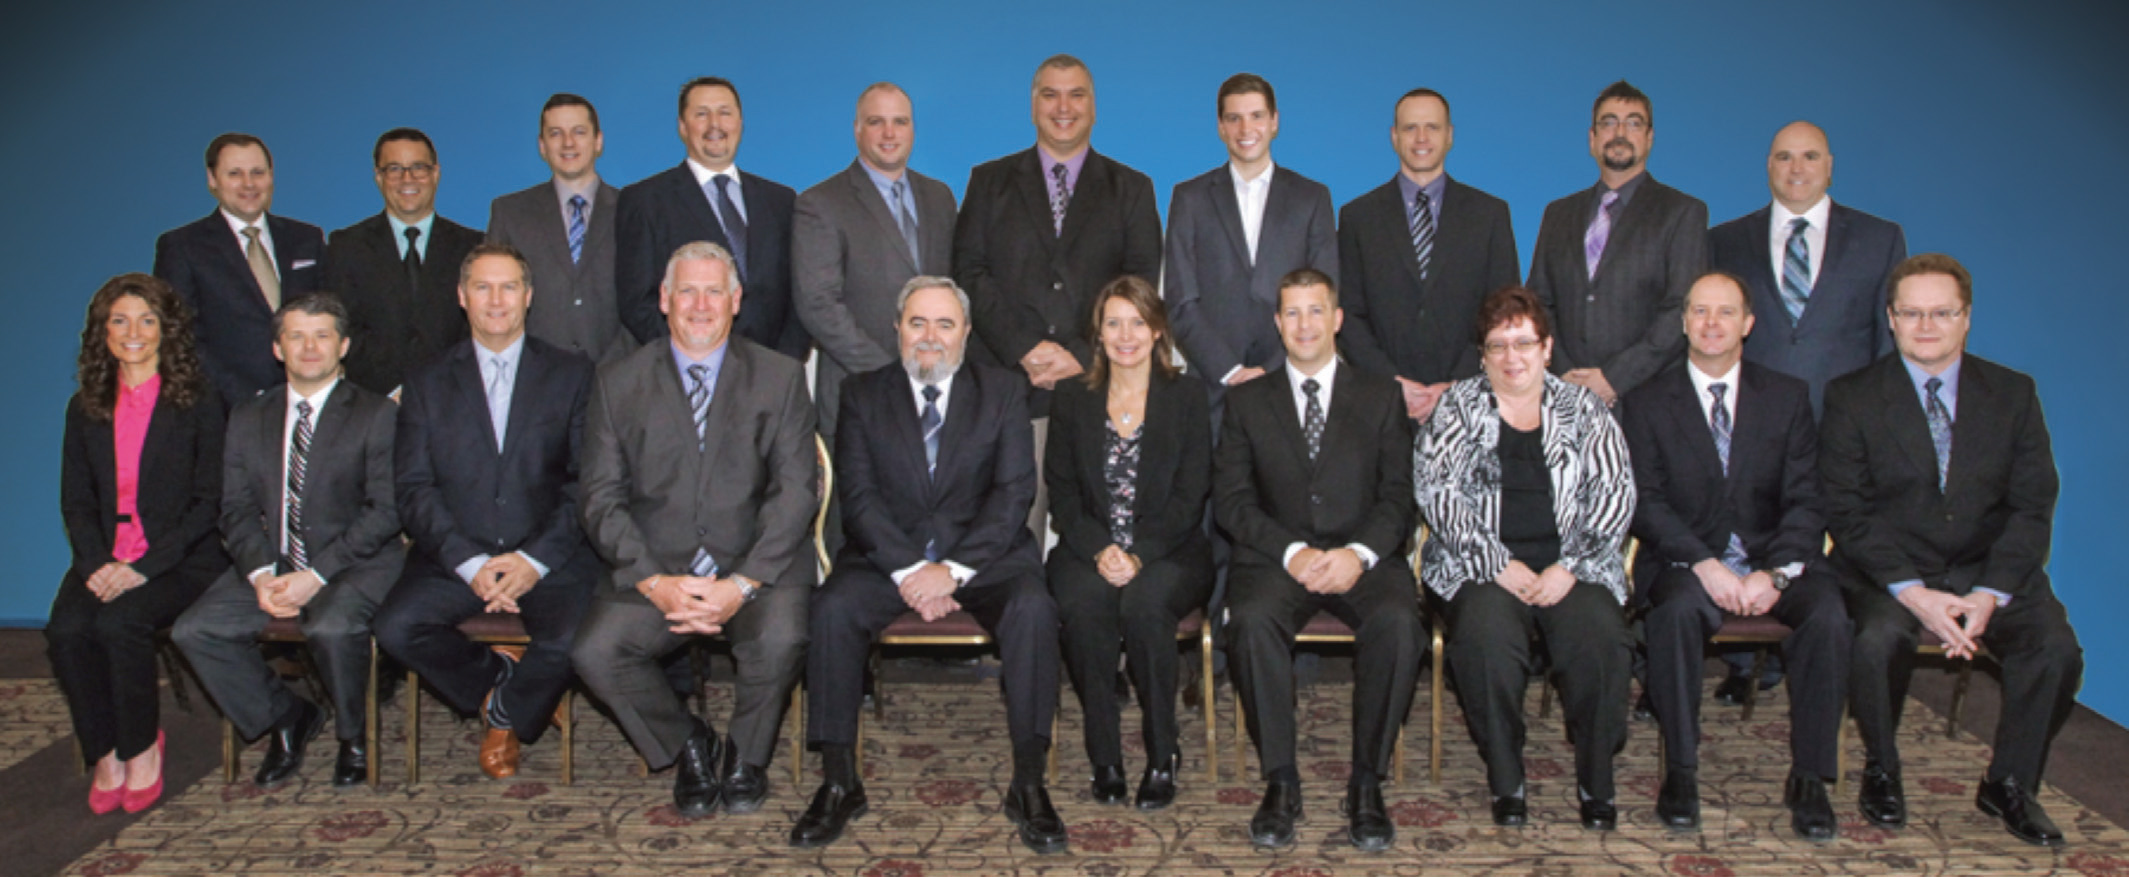 Newfoundland and Labrador Construction Association Board of Directors